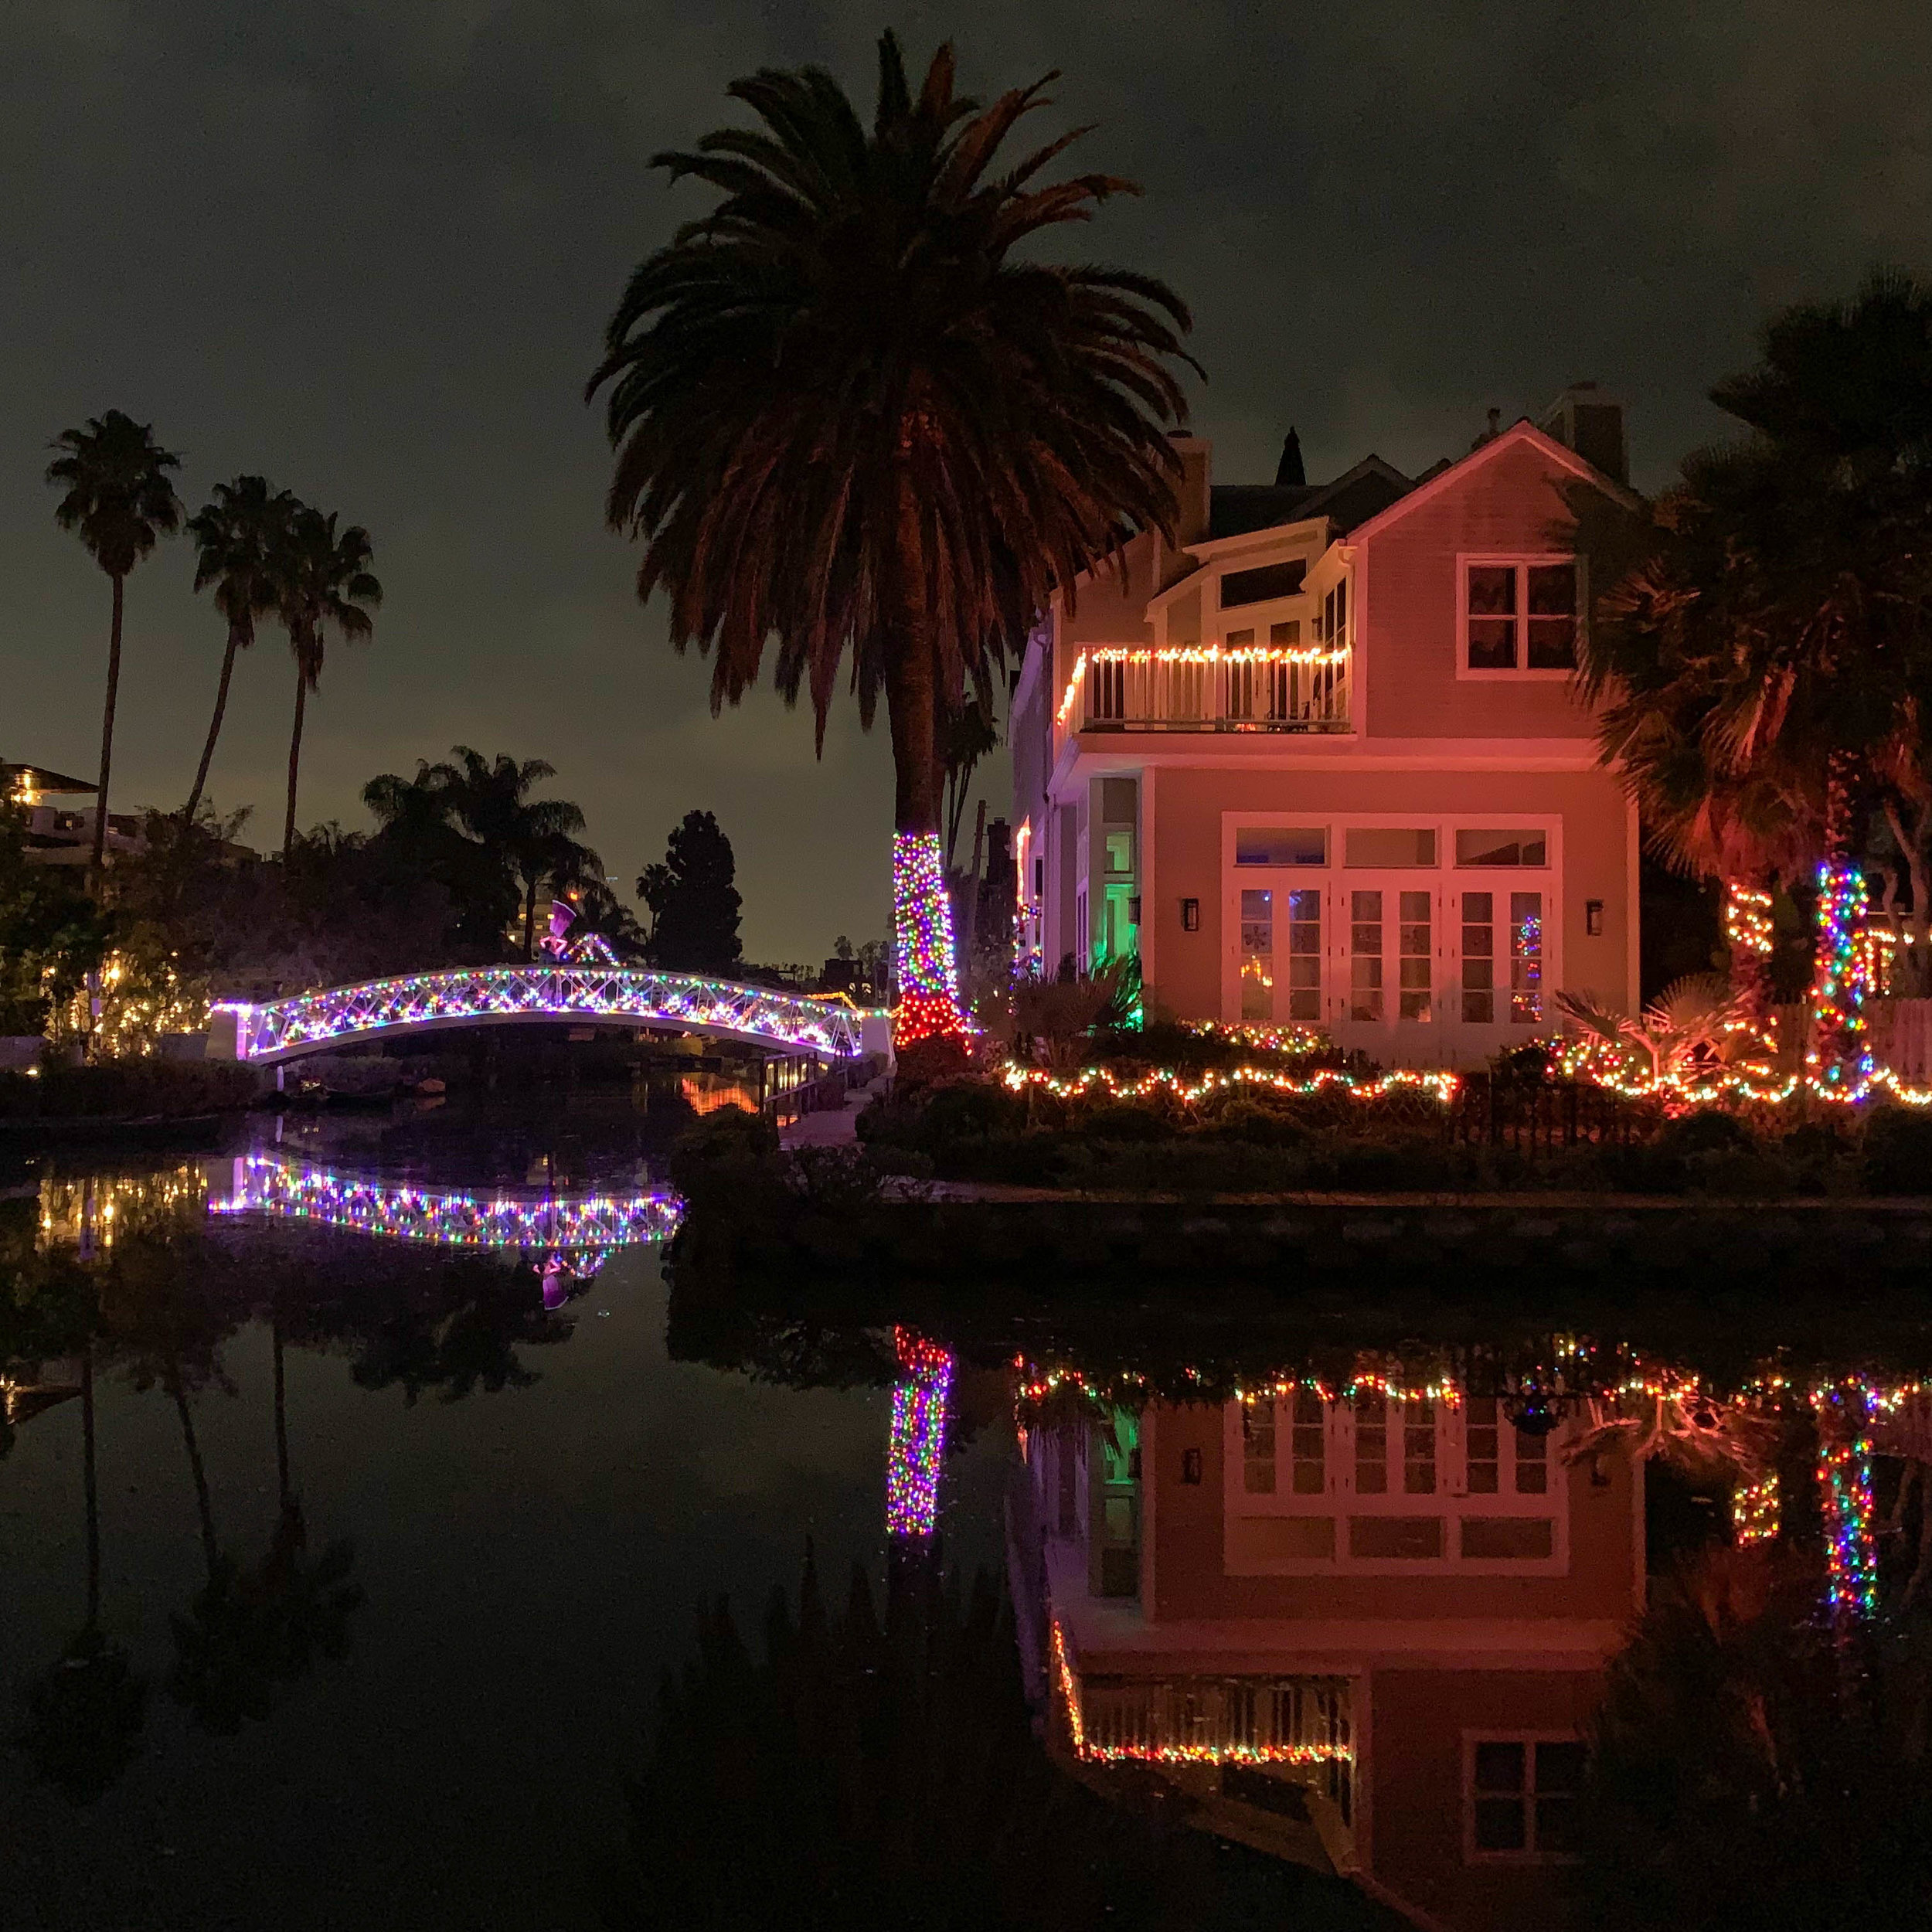 Christmas Lights in Los Angeles Venice Canals - Home Decorations